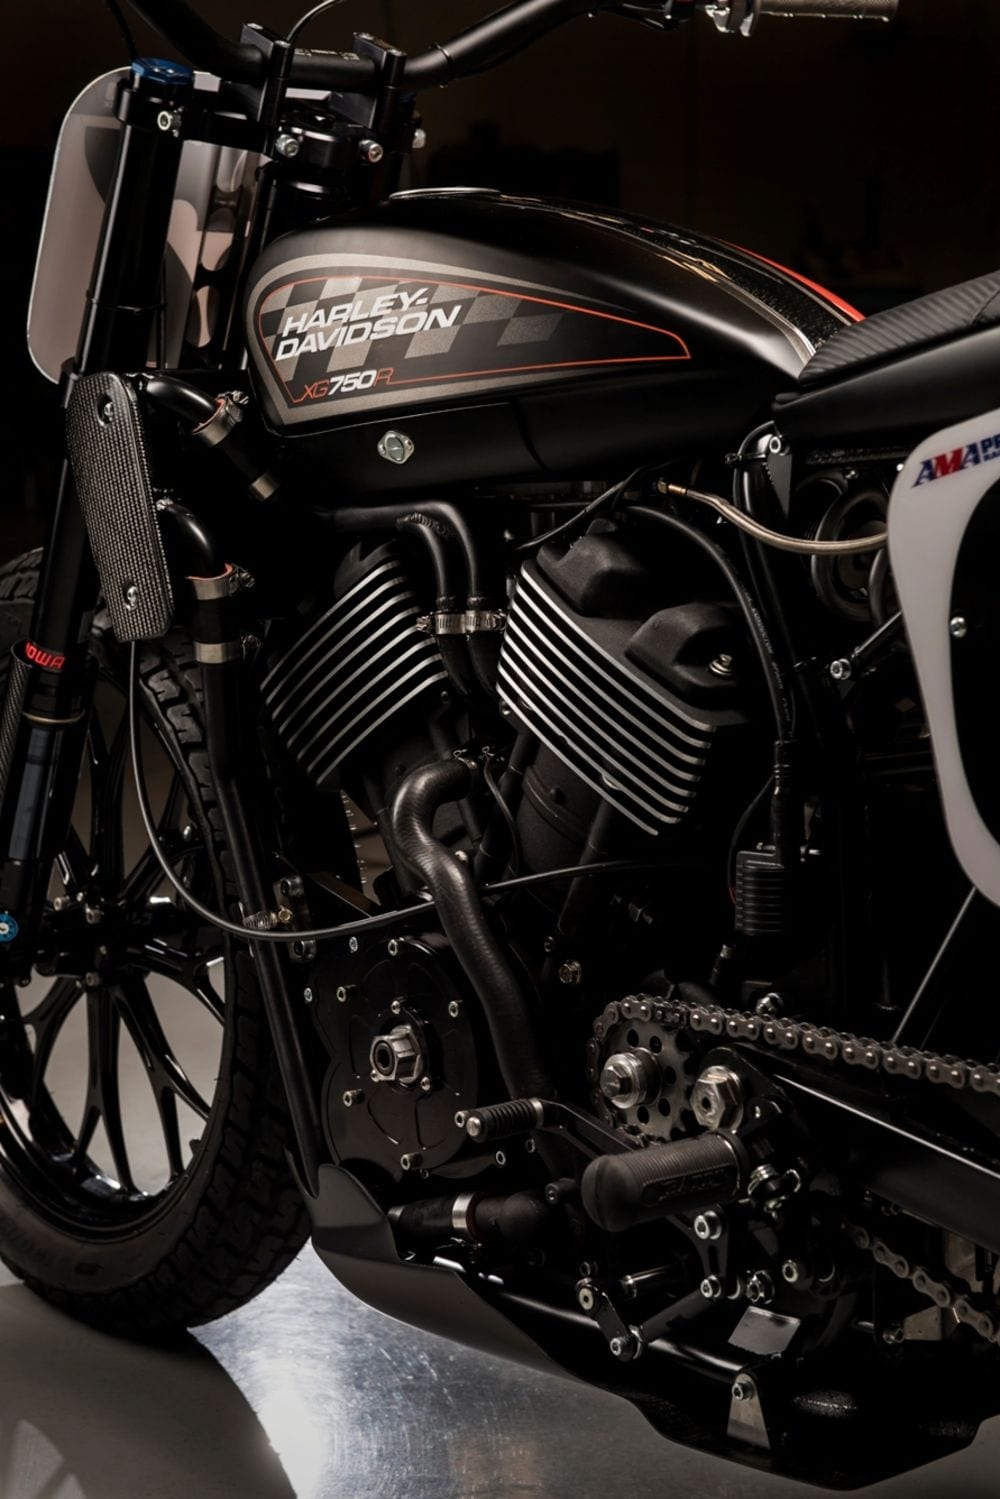 Photos of the new Harley Davidson 750 Flat track bike at Vince and Hines in Indianapolis Indiana on April 27th 2016.